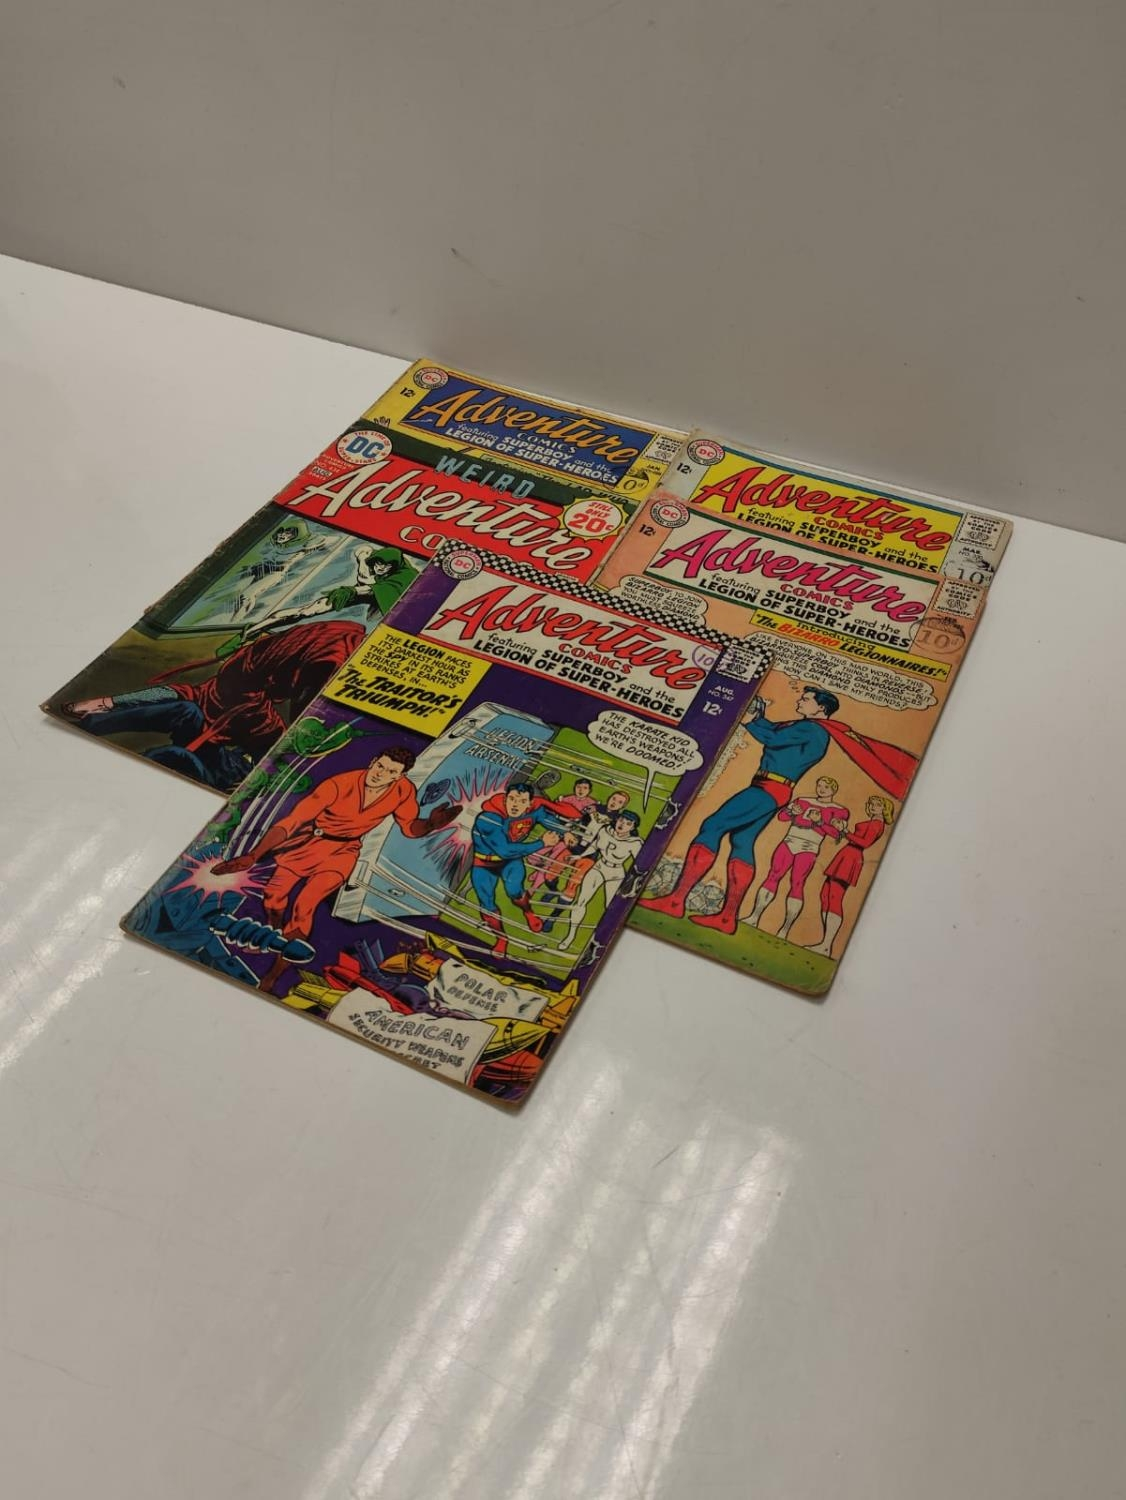 5 editions of DC Adventure Comics featuring Super-boy. - Image 15 of 19